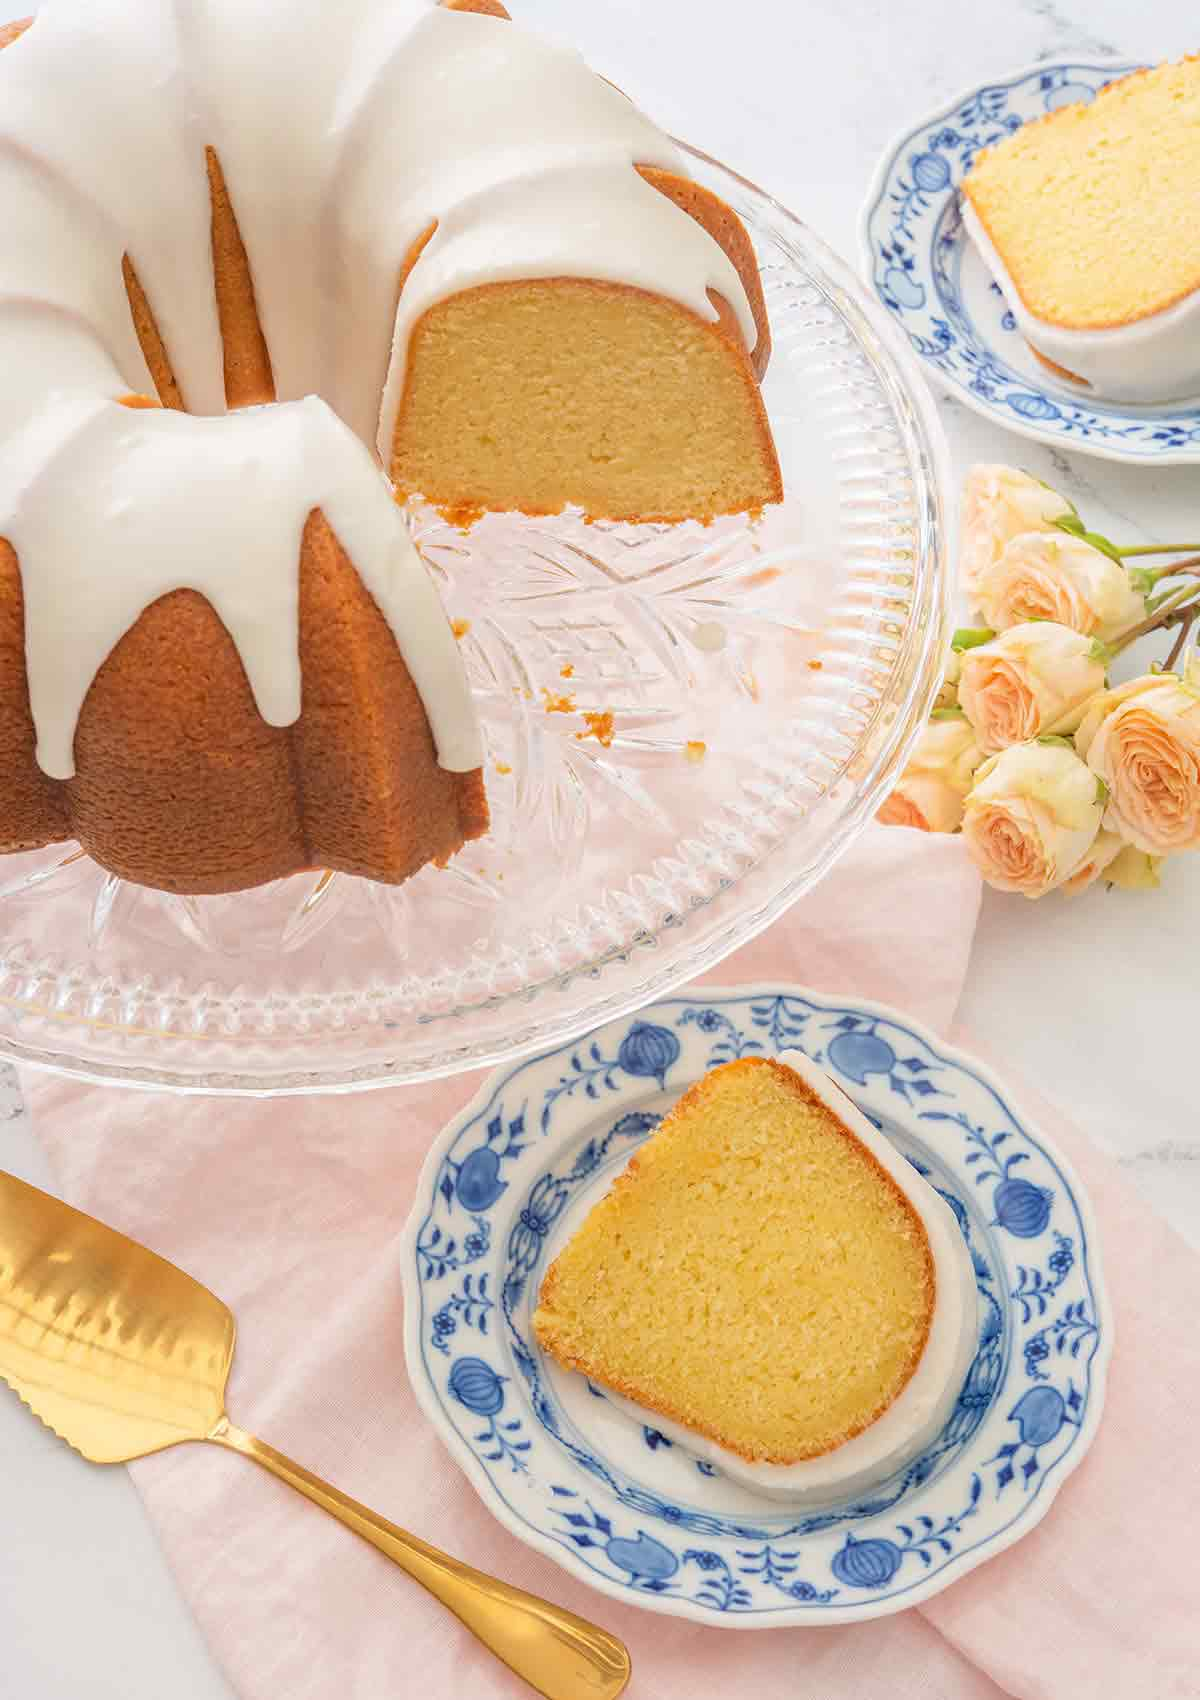 Overhead view of a vanilla Bundt cake with two slices cut out on their own small dessert plates.